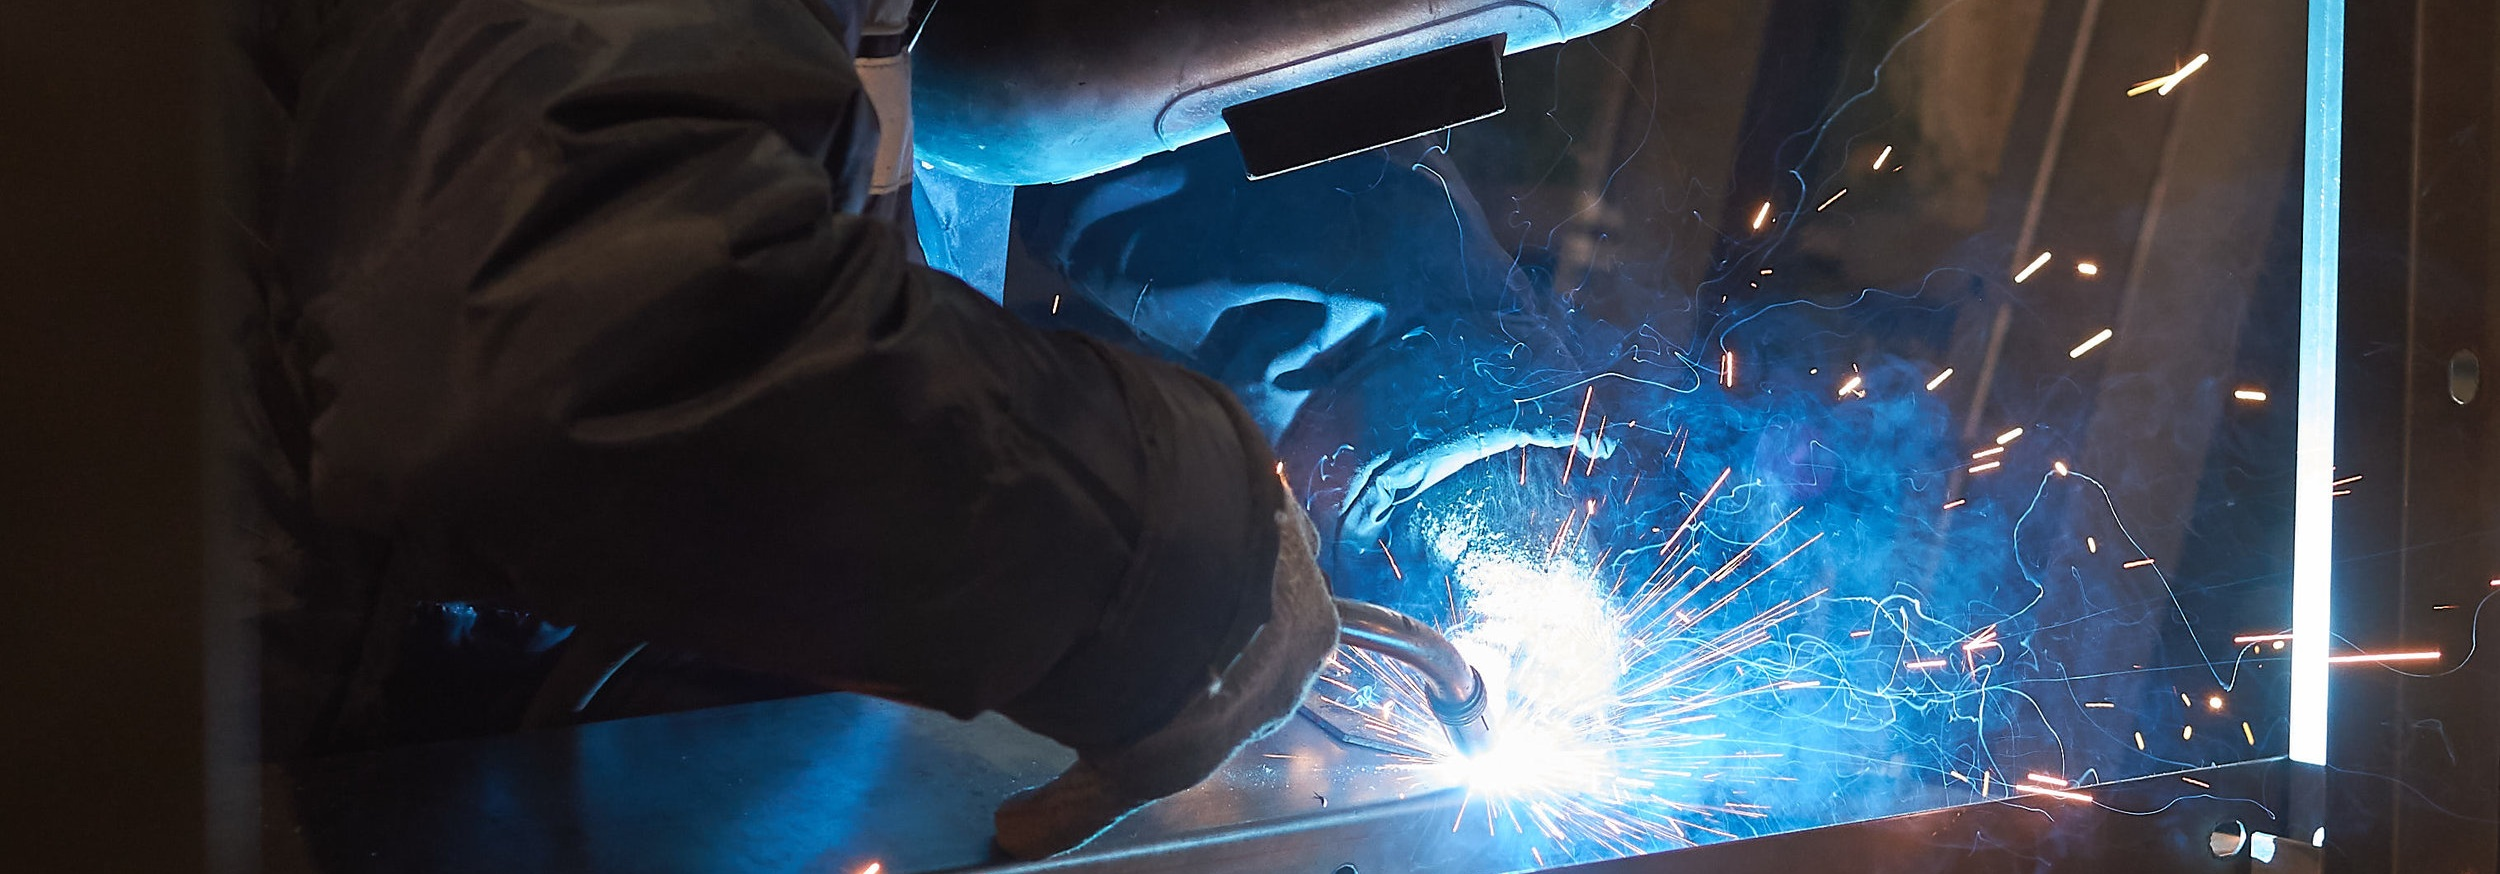 Welder joining pieces of metal during the part fabrication process.